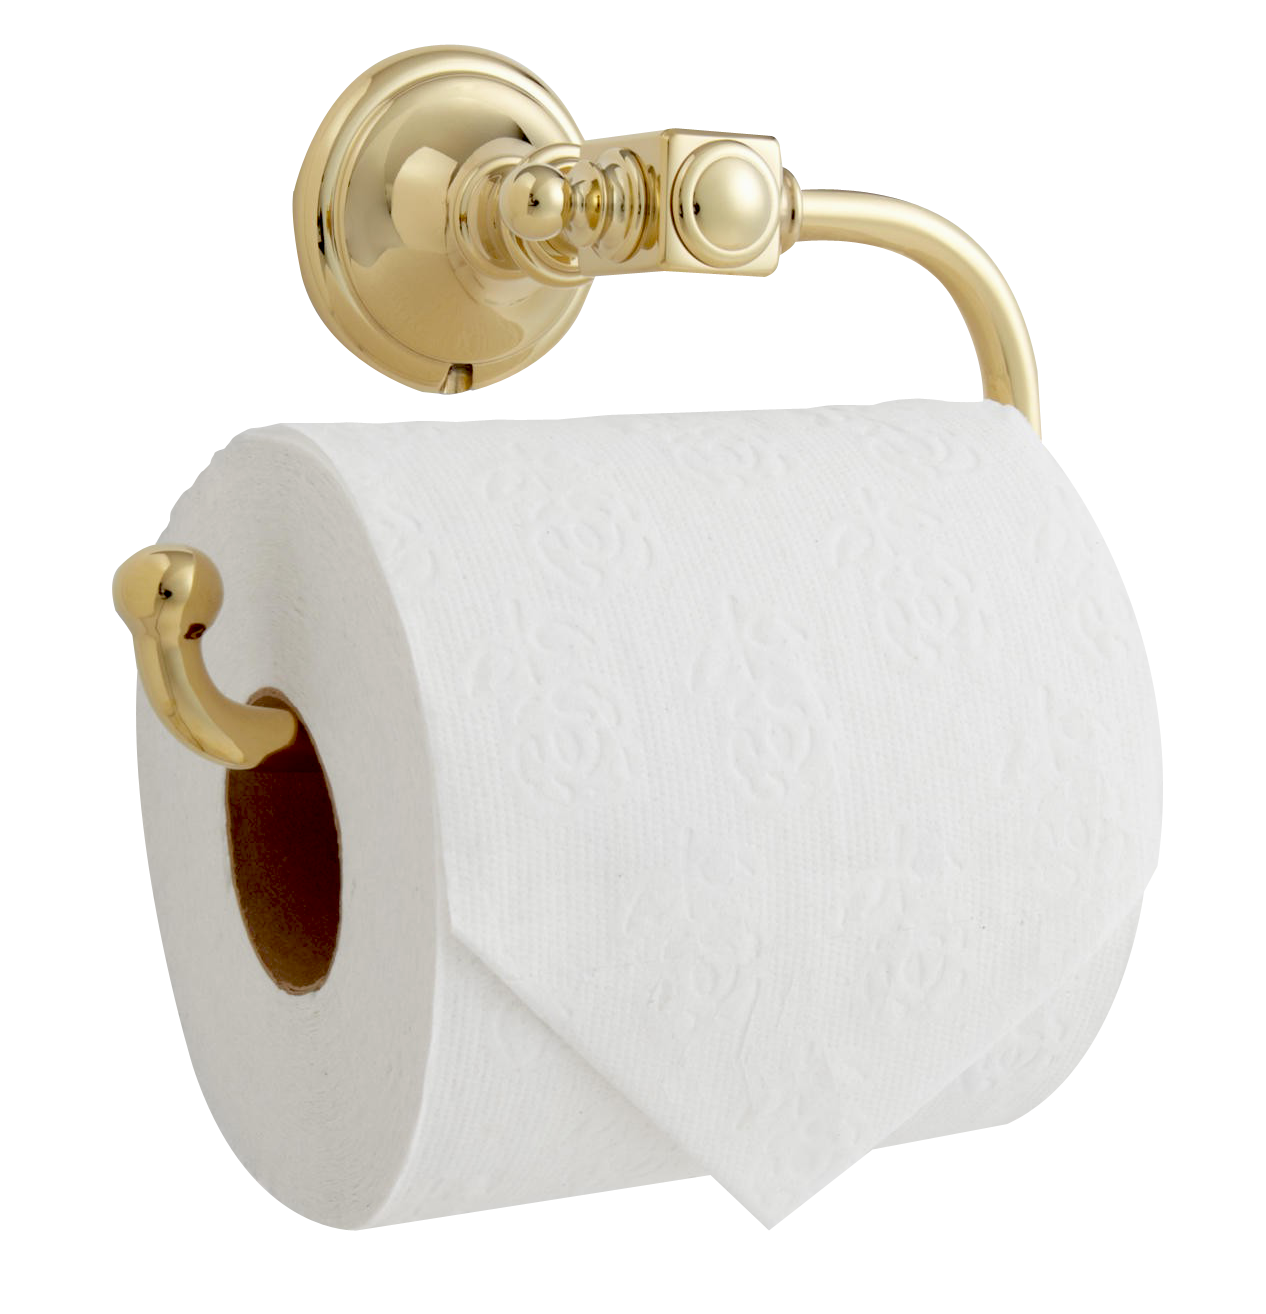 Toilet paper png image. Clipart bathroom object